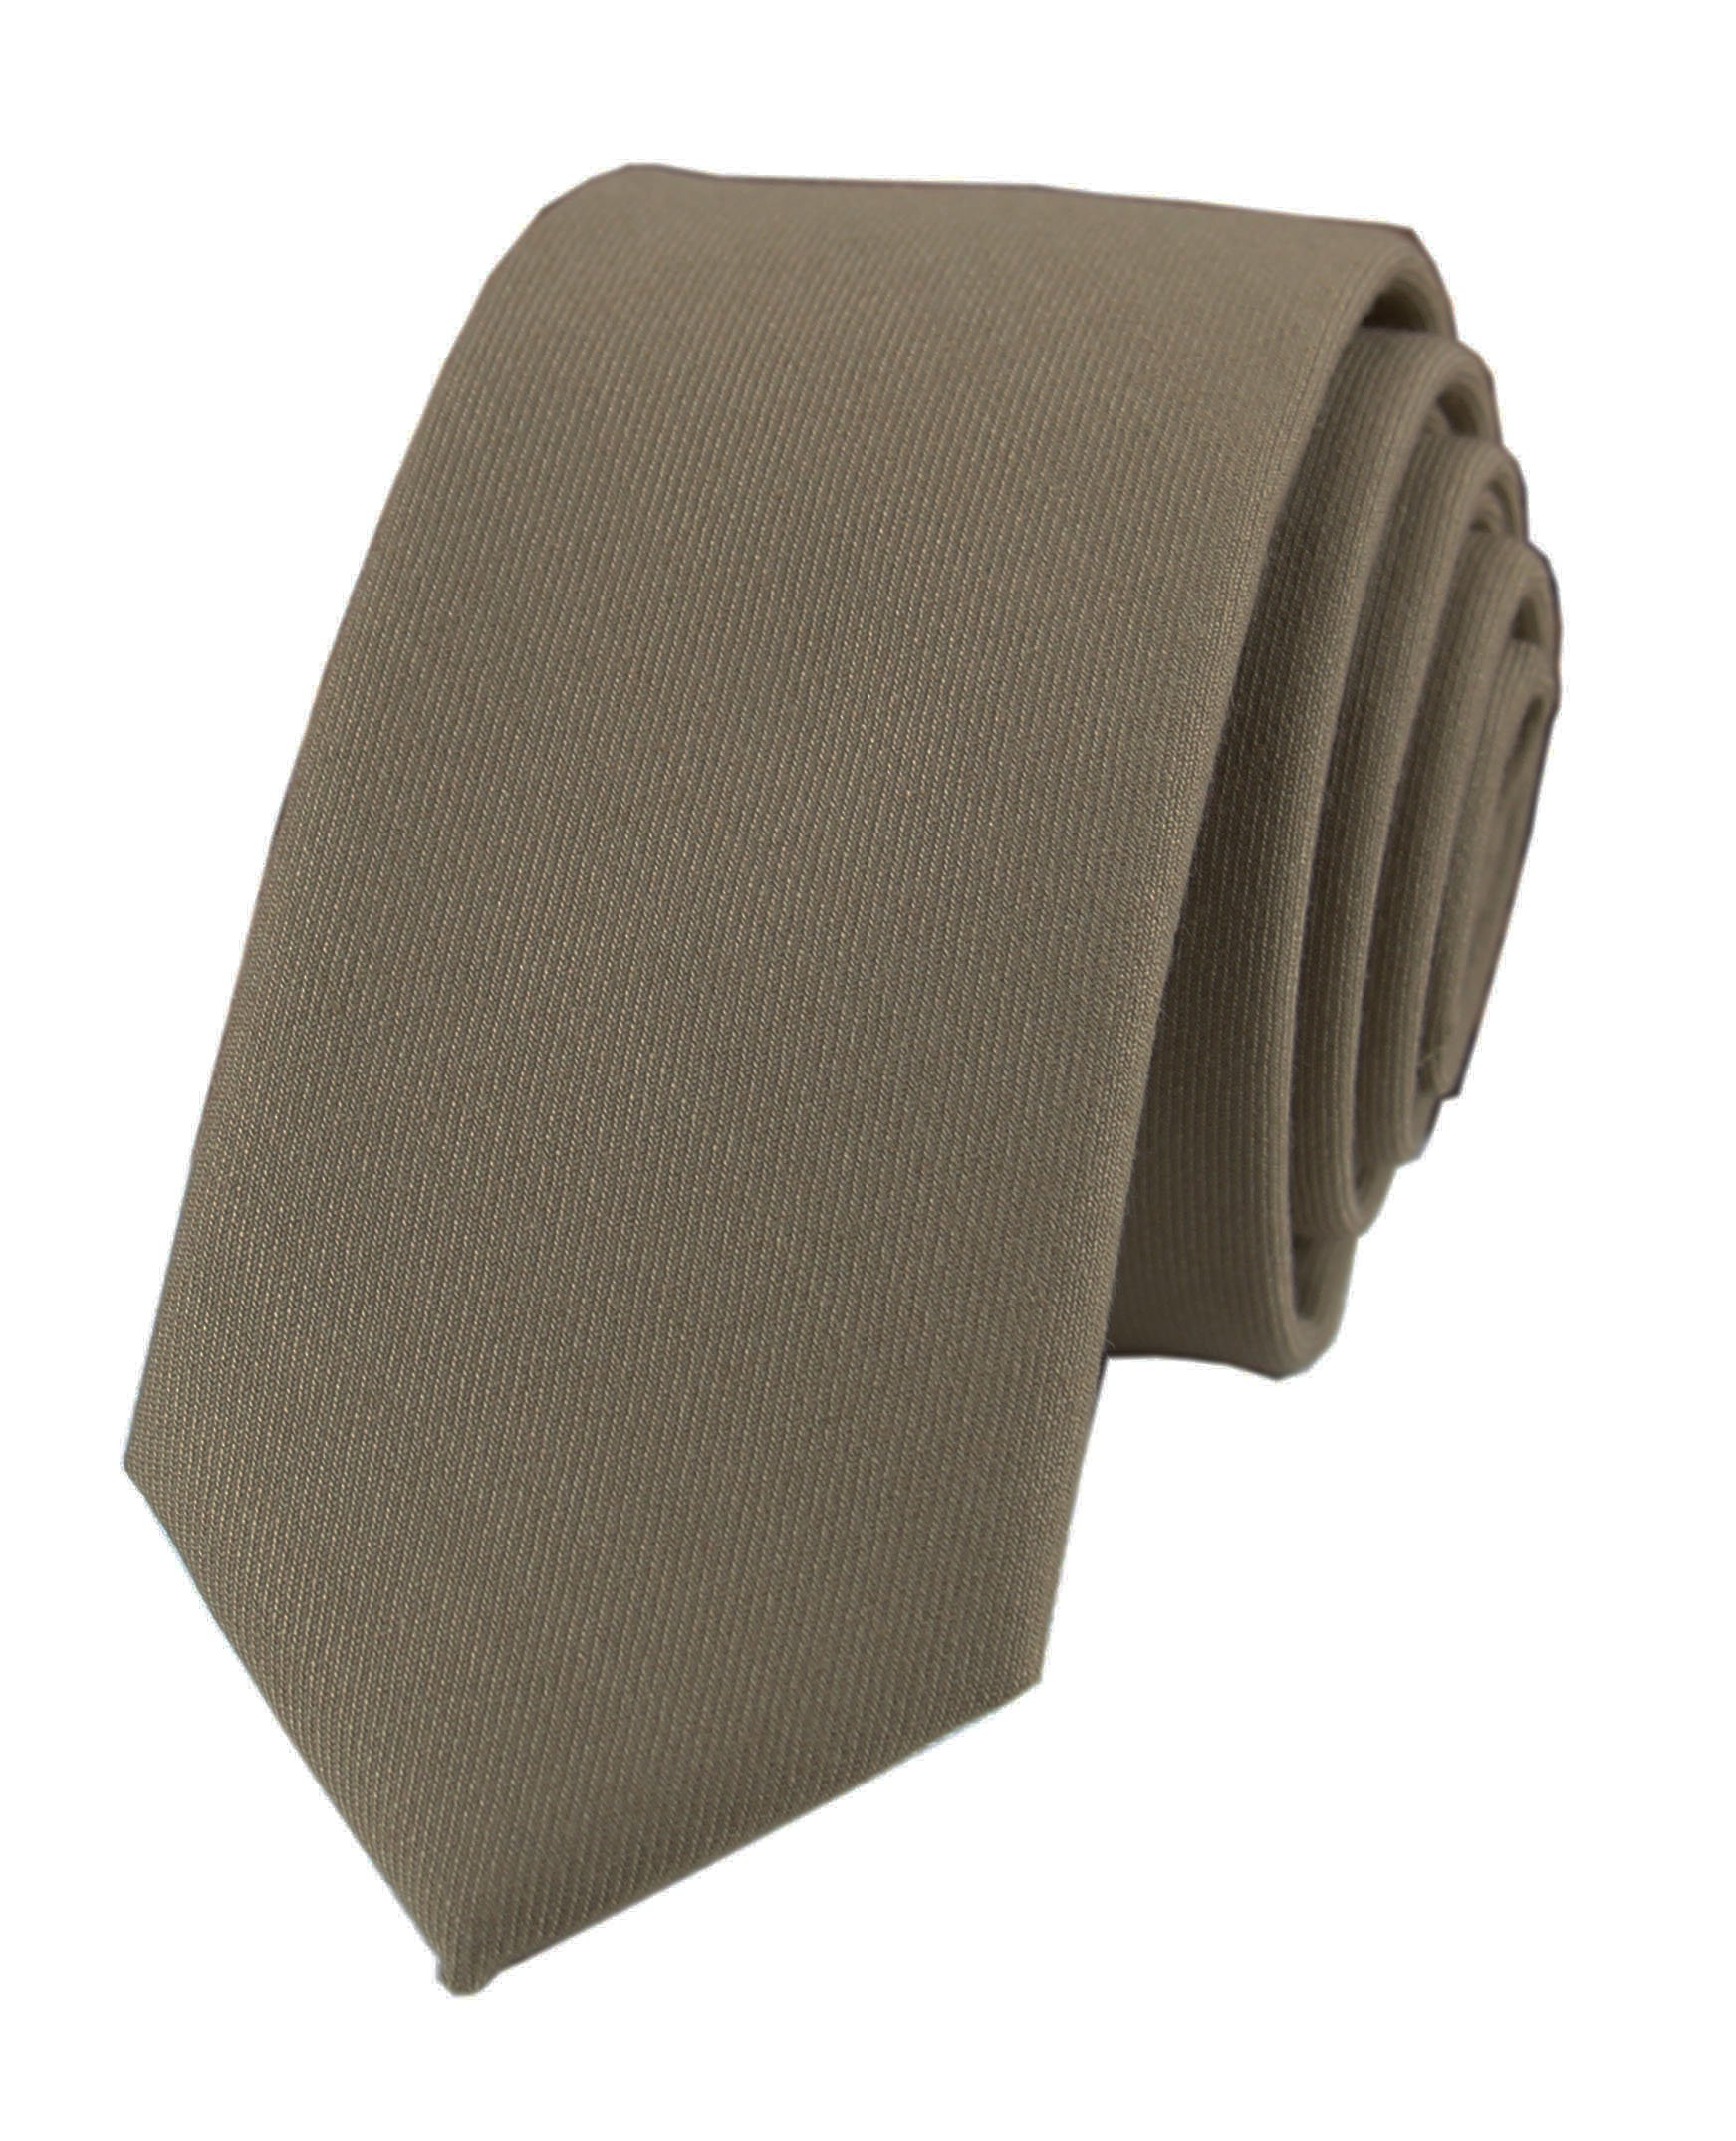 Cream Beige Cotton Mens Ties Married Neckties Summer Line Collection for Father